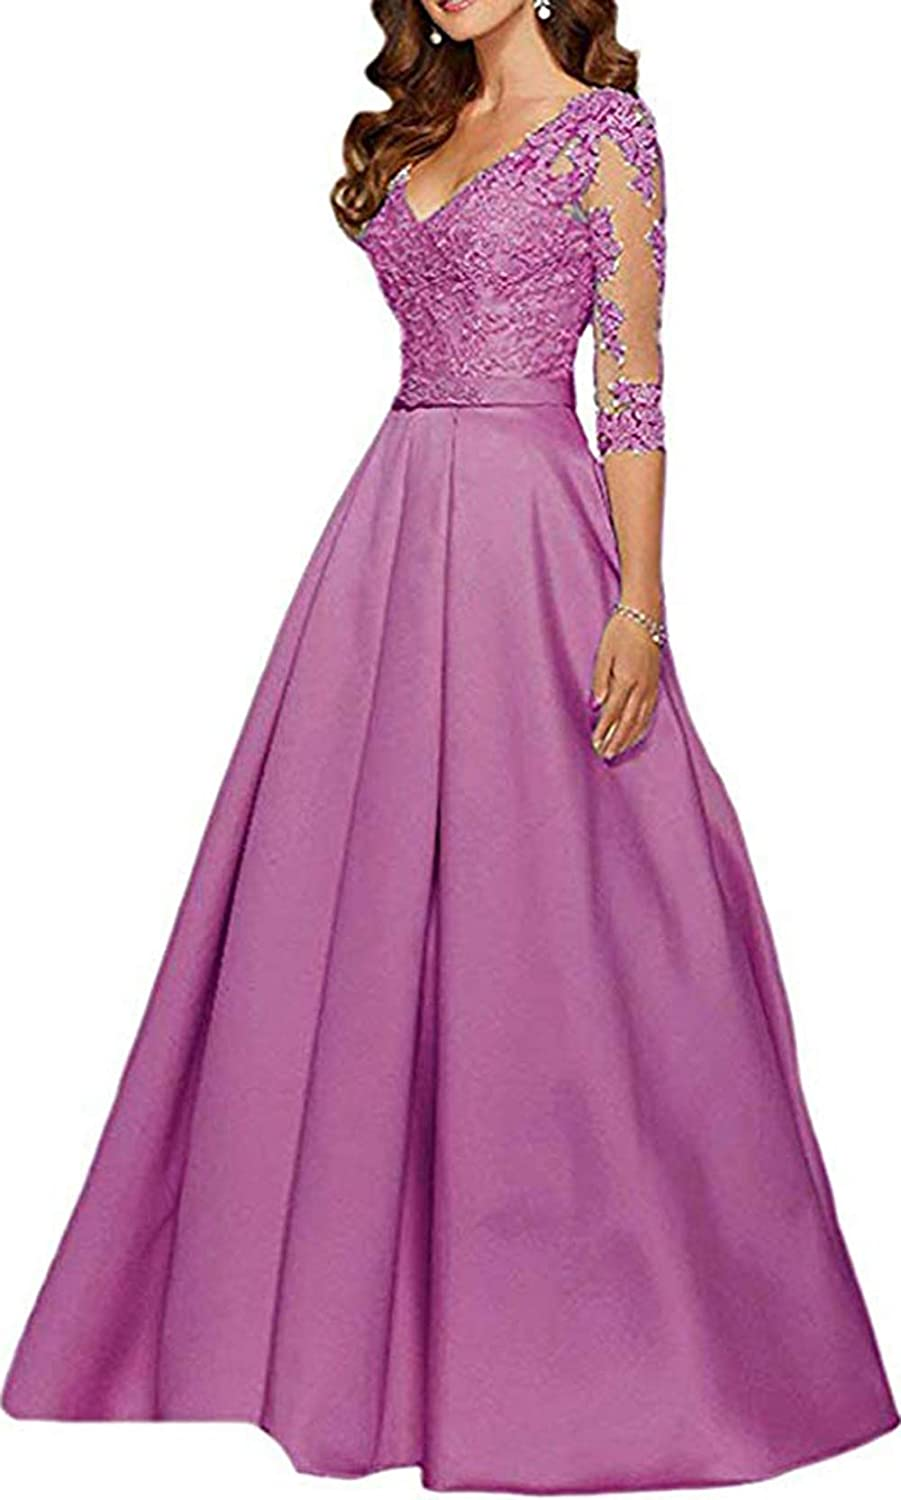 Dark Mauve Ri Yun Womens V Neck 3 4 Sleeves Prom Dresses Long 2019 Beaded Lace Mother of The Bride Dresses with Pockets